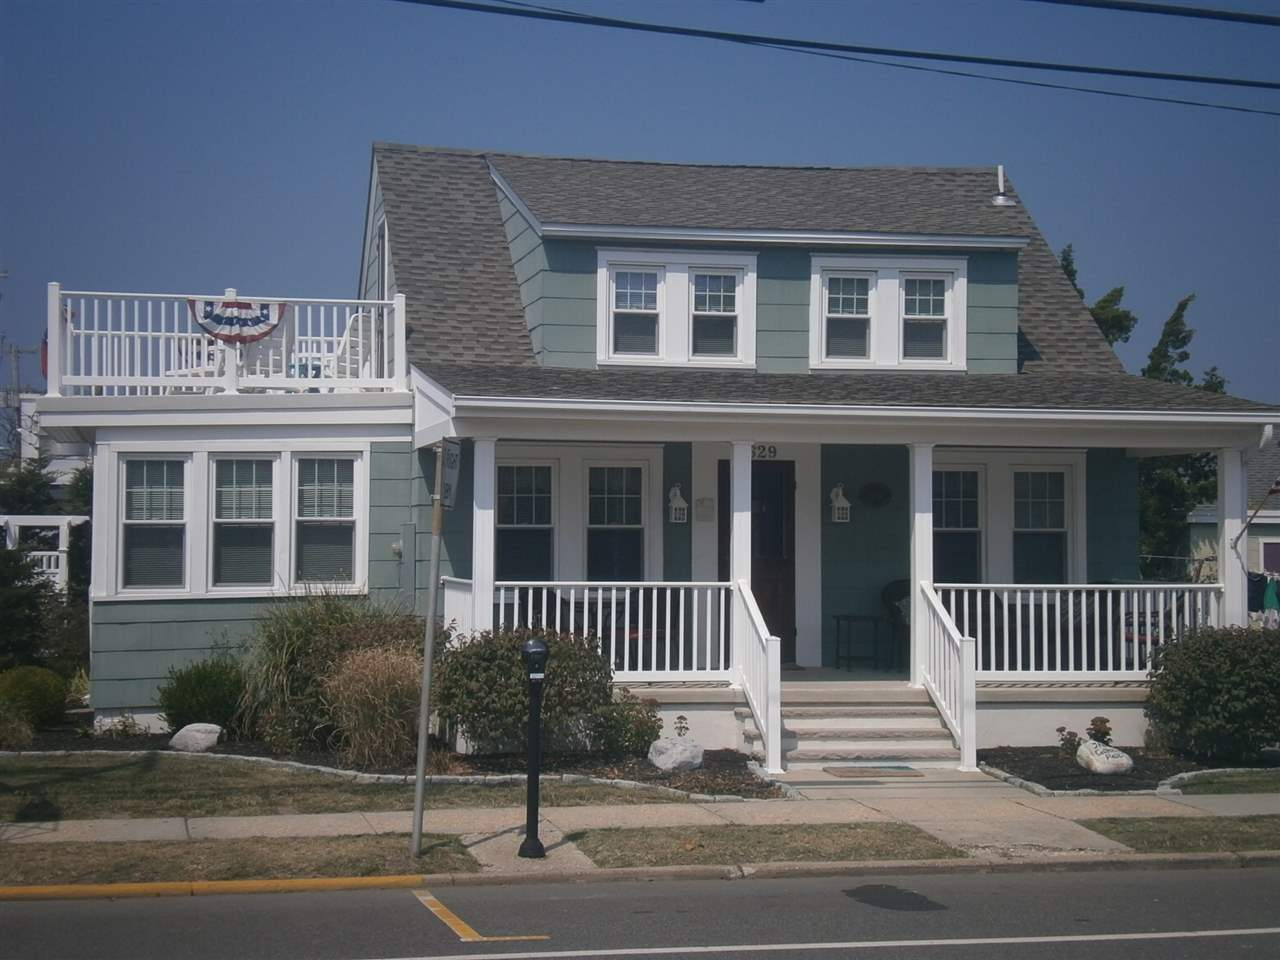 9629 Second, Stone Harbor, NJ 08247